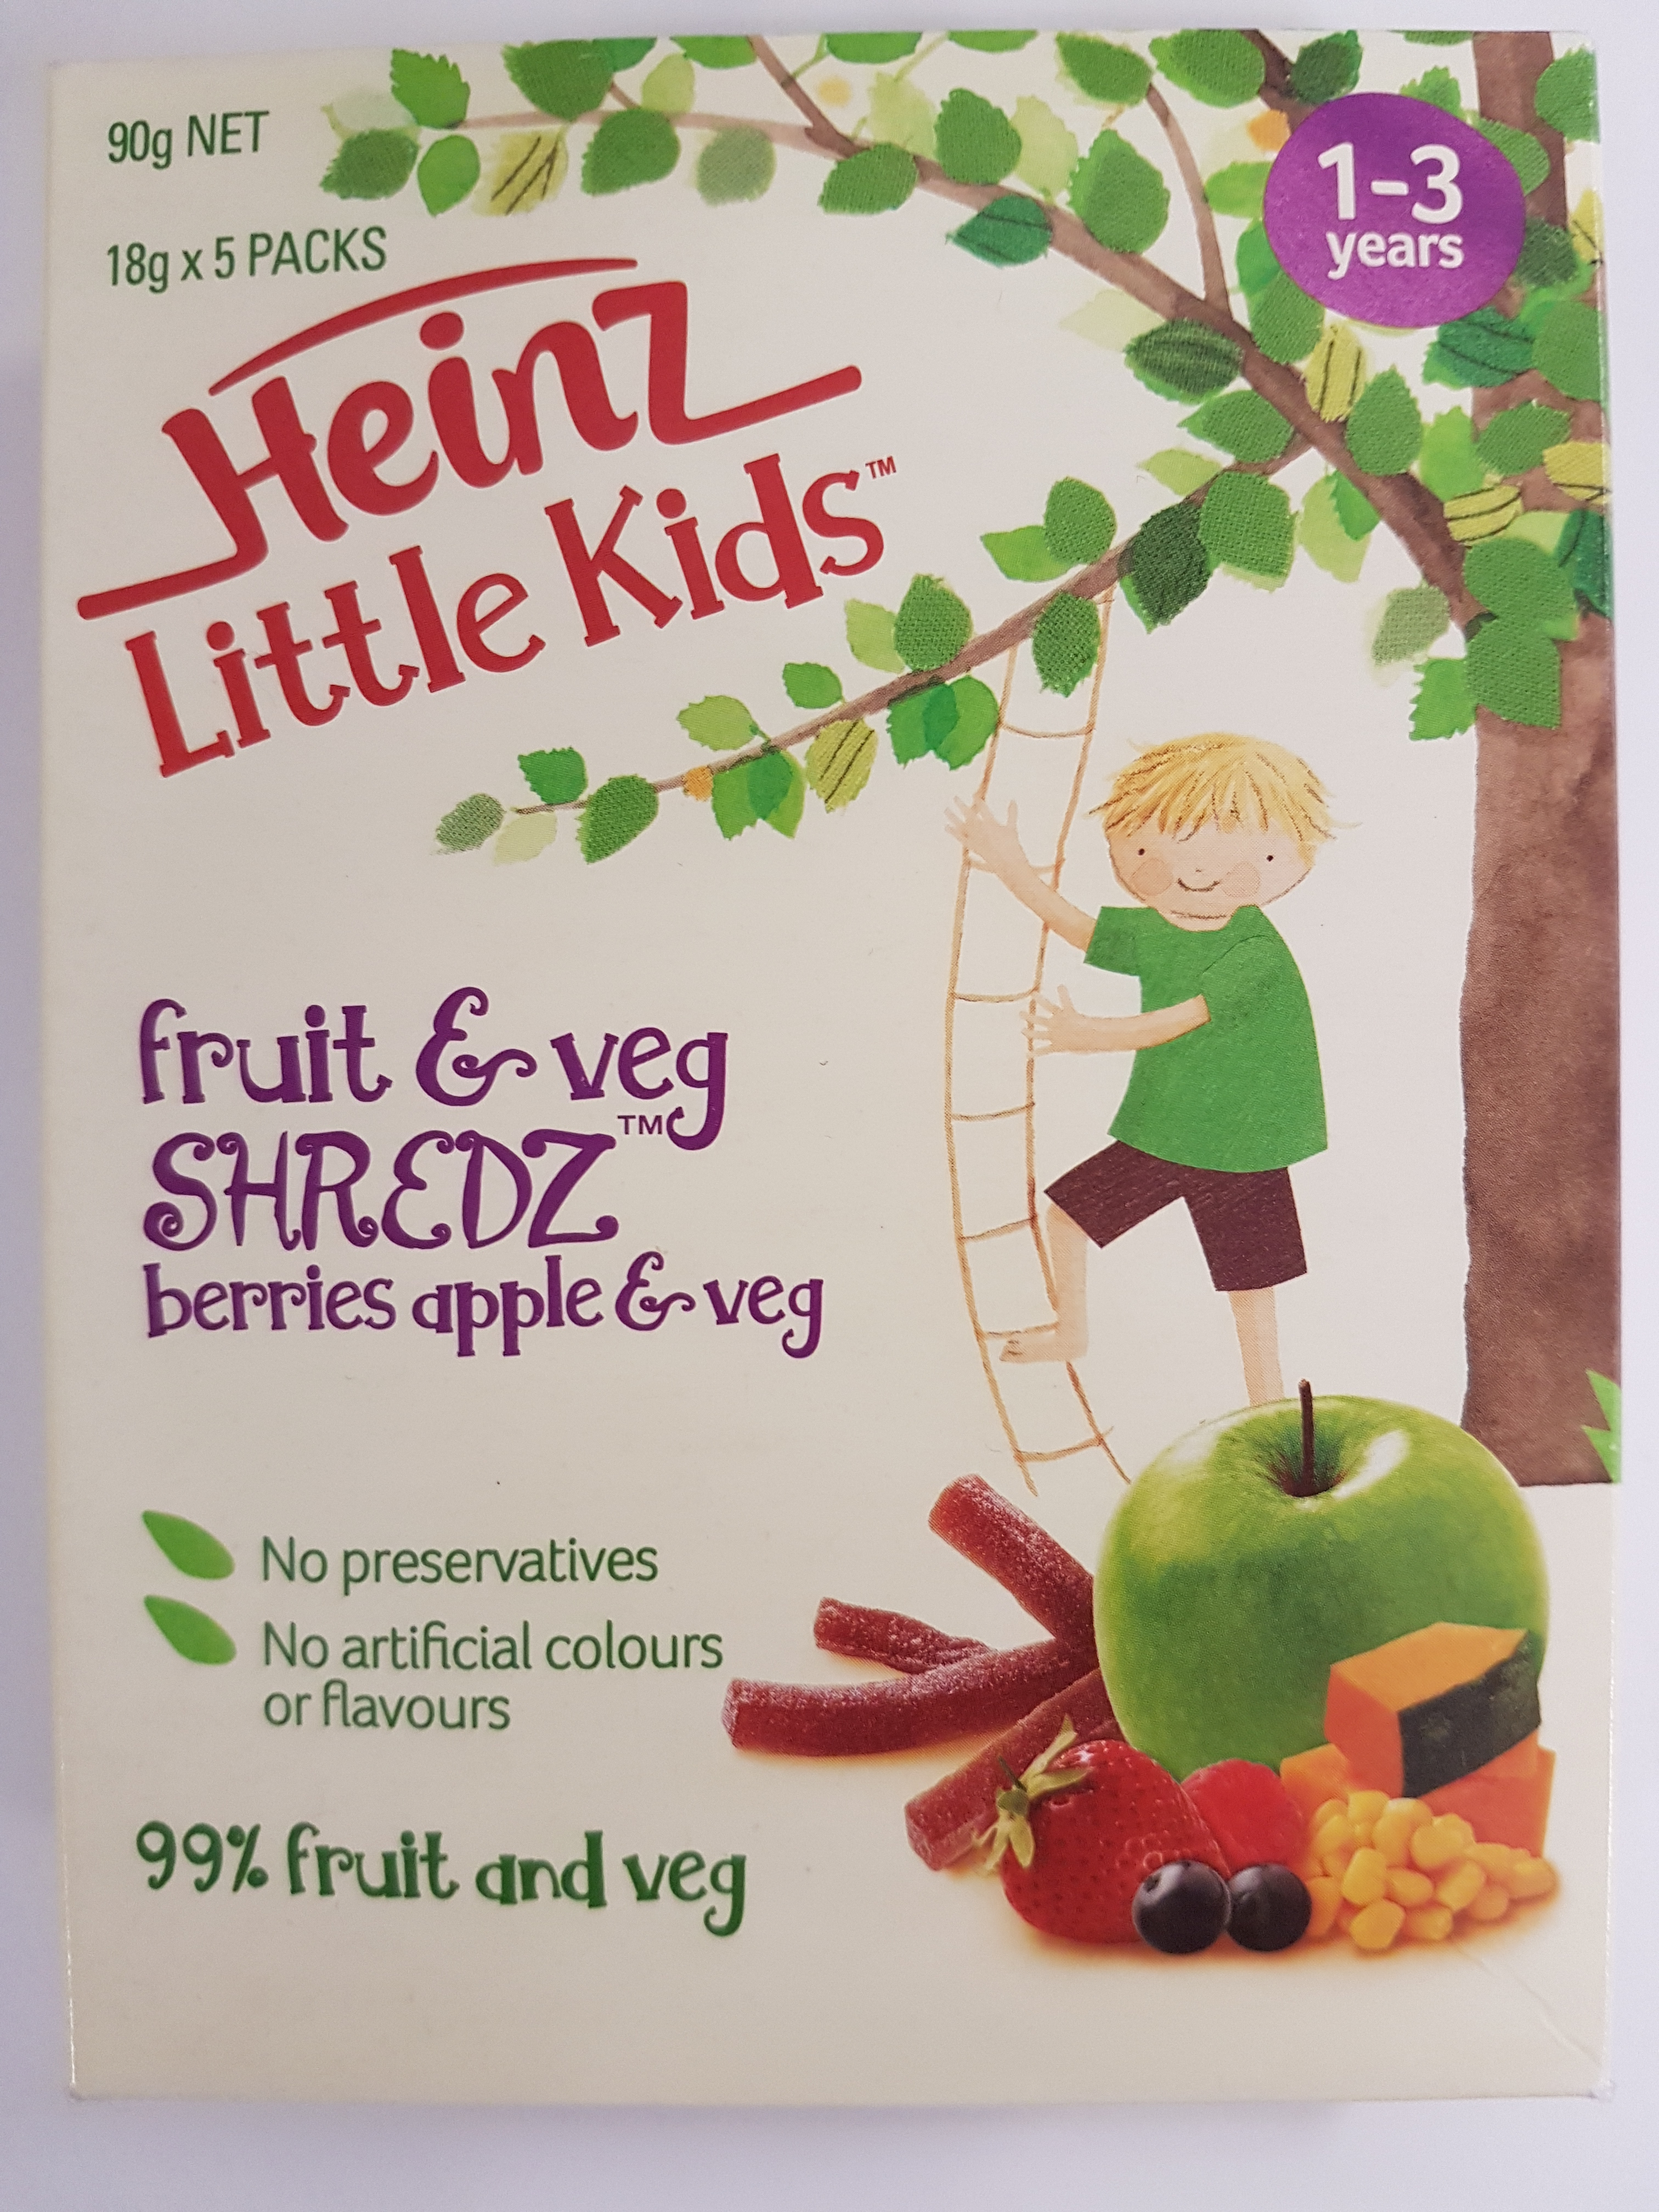 accc takes action against heinz over nutritional claims on food